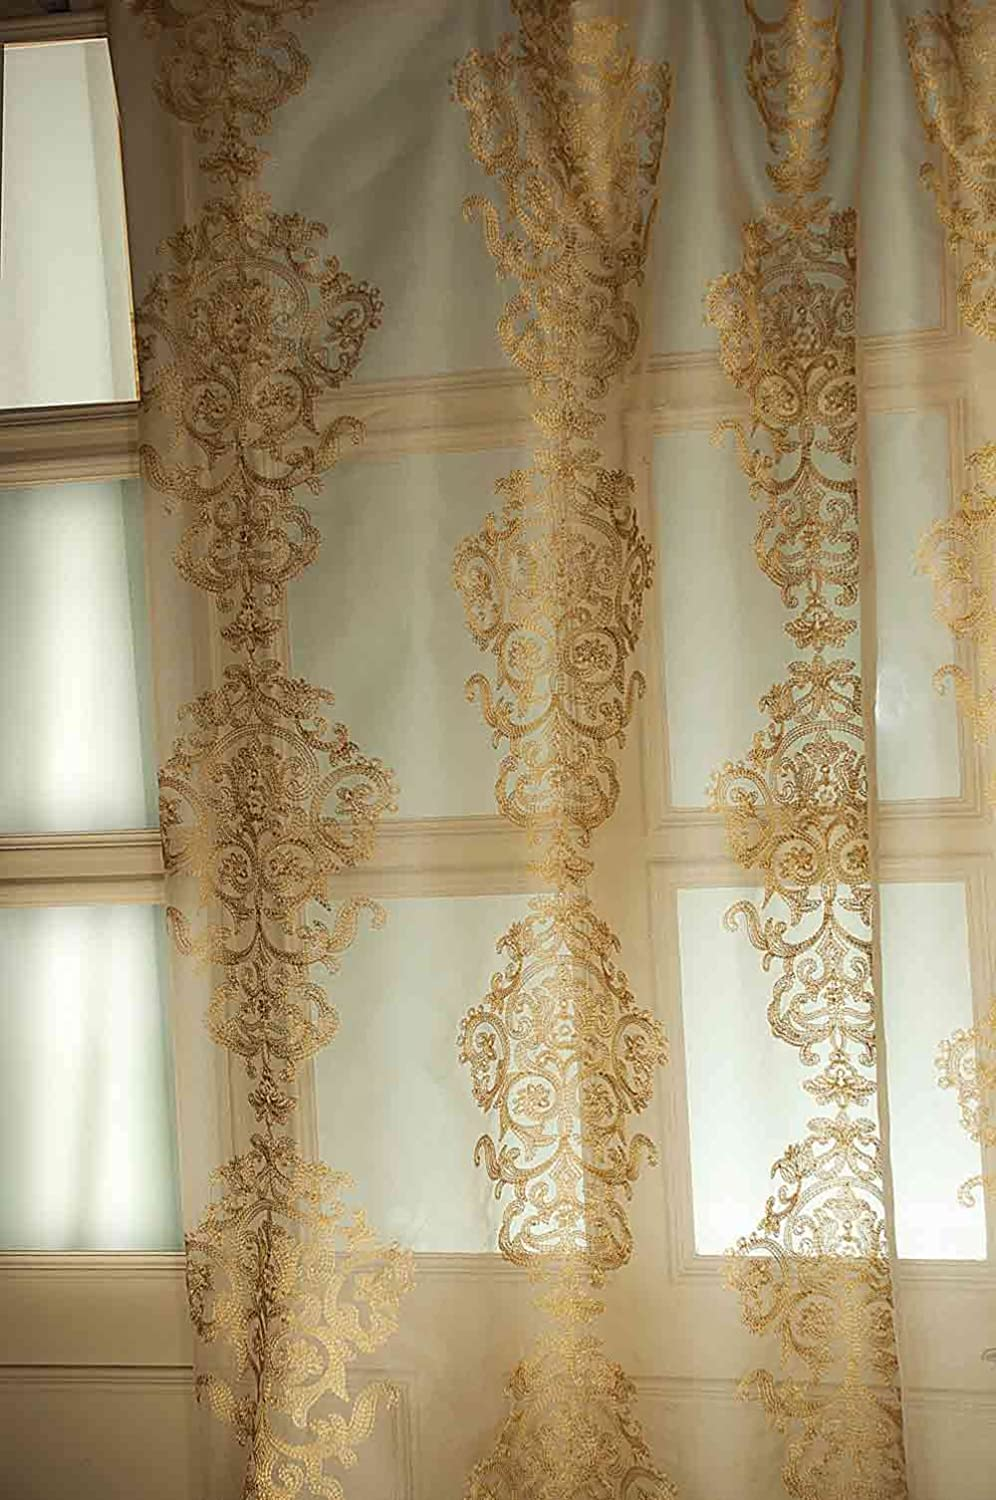 Amazon Gold Crewel Embroidery Silk Sheer Curtain Panel Rod Pocket 52W X 84L Home Kitchen